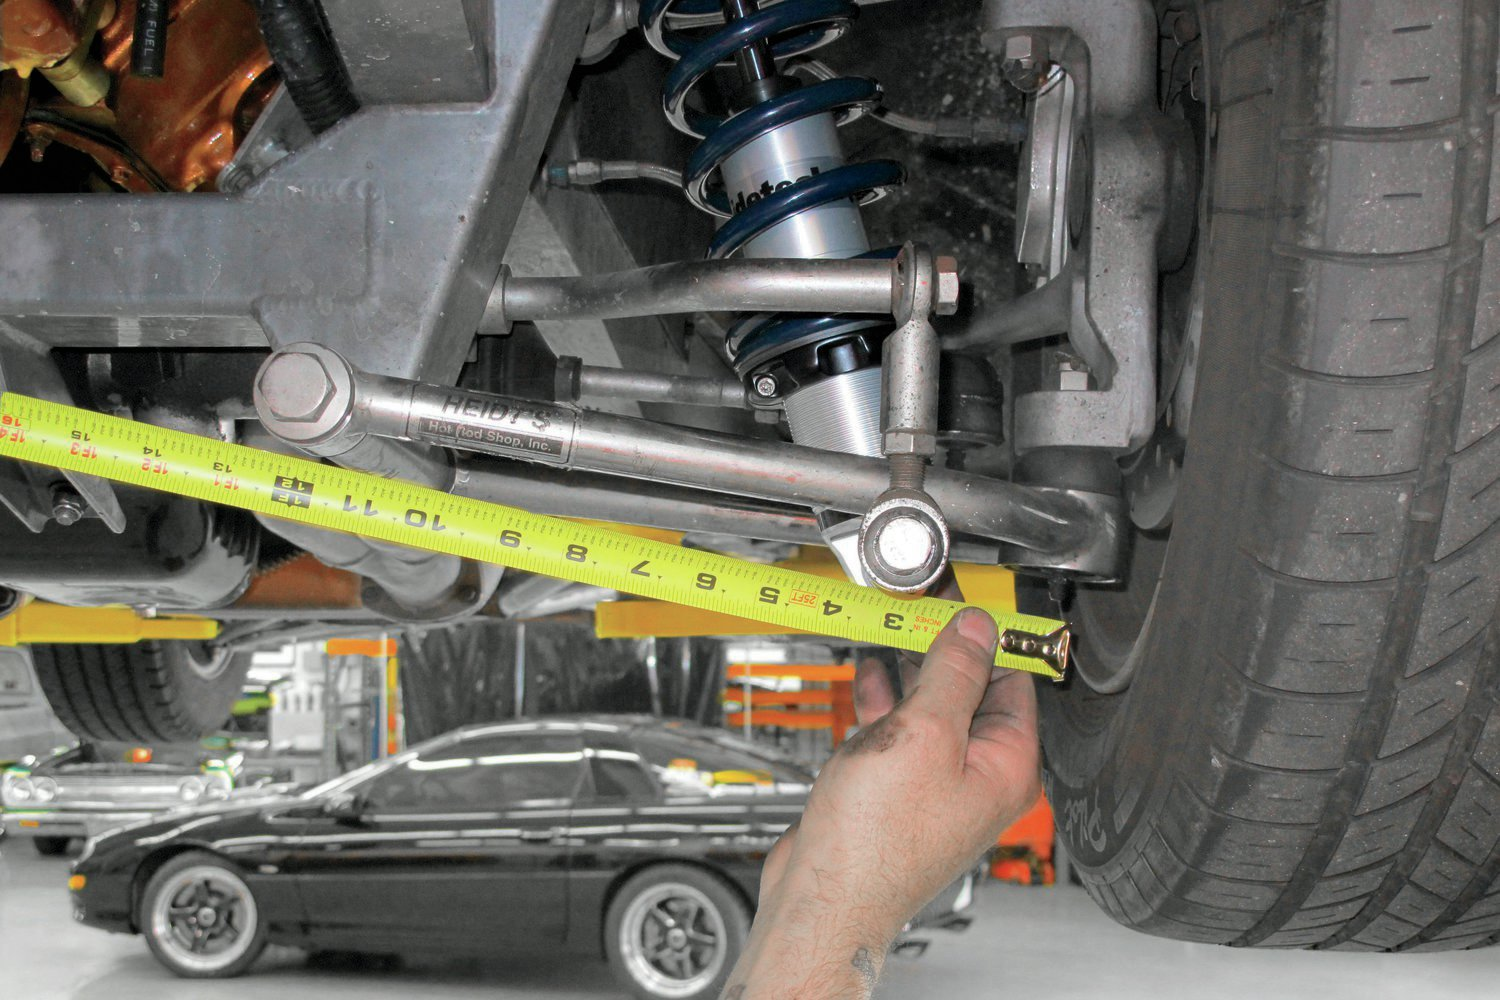 Part of the procedure to determine the motion ratio of an independent suspension is measuring the distance from the centerline of the control arm pivot point to the centerline of the ball joint.